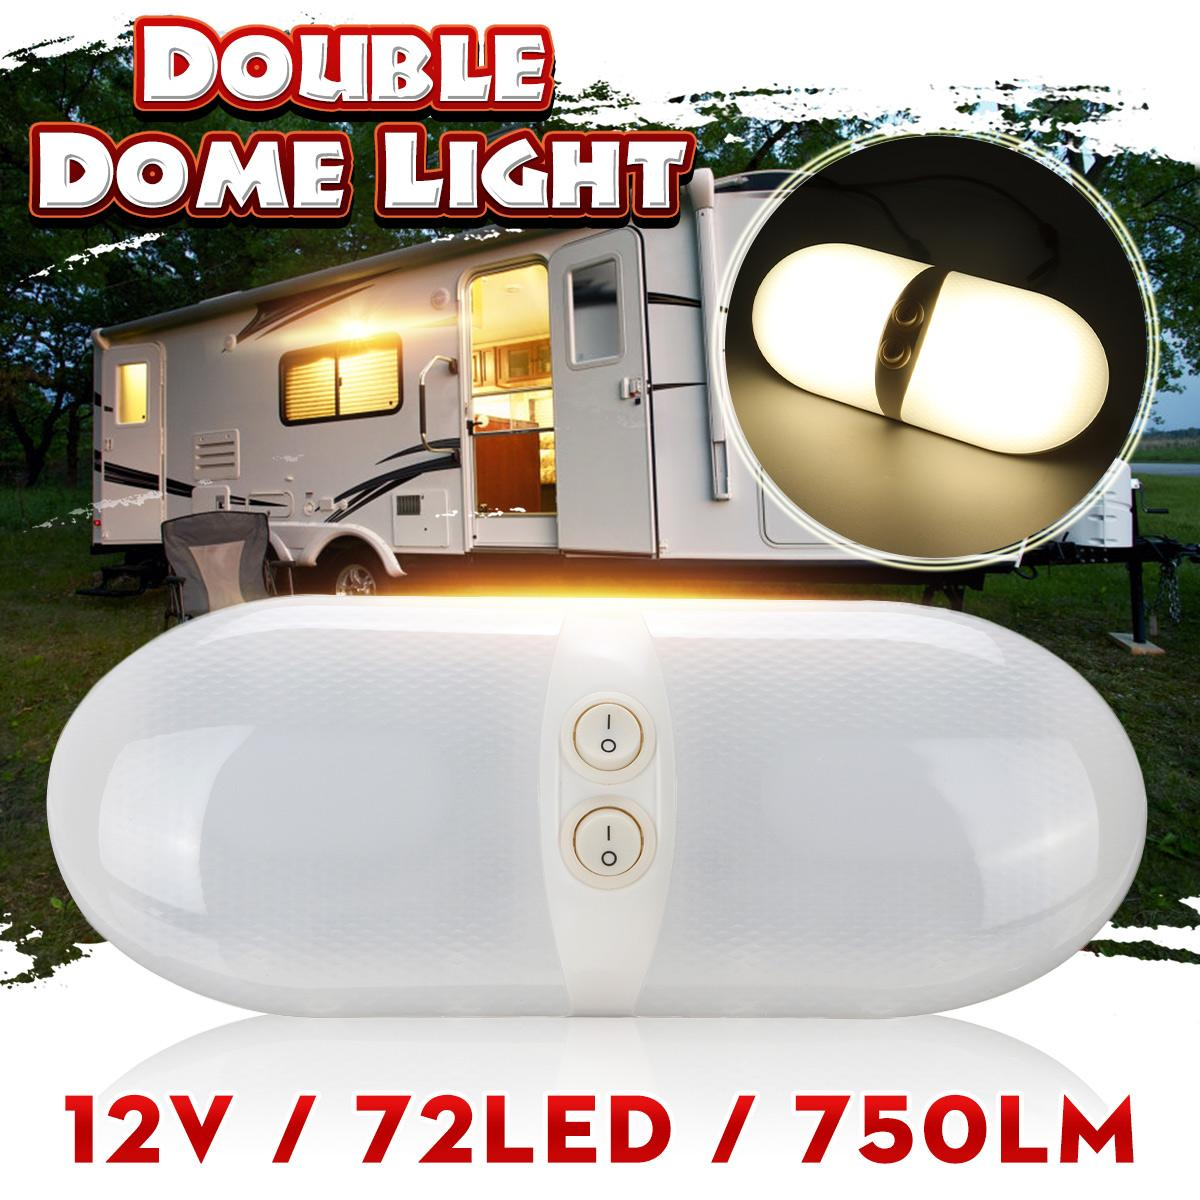 12V 72LED RV Ceiling Dome Light With Switch Double Dome Interior Replacement Lighting For RV Trailer Camper Motorhome Boat